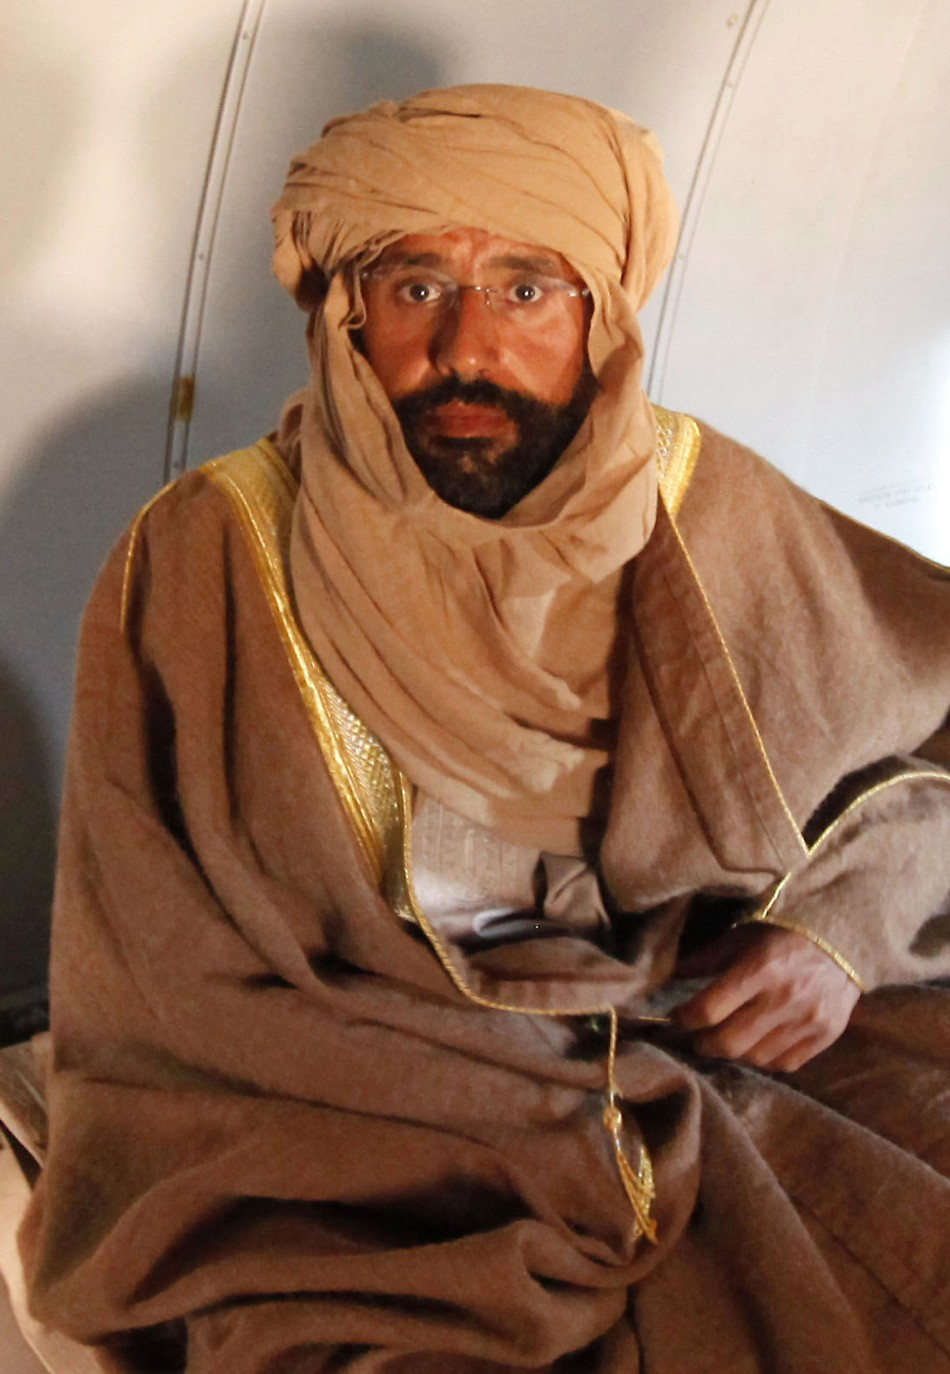 Saif Gaddafi sitting in Zintan after arrest on November 19